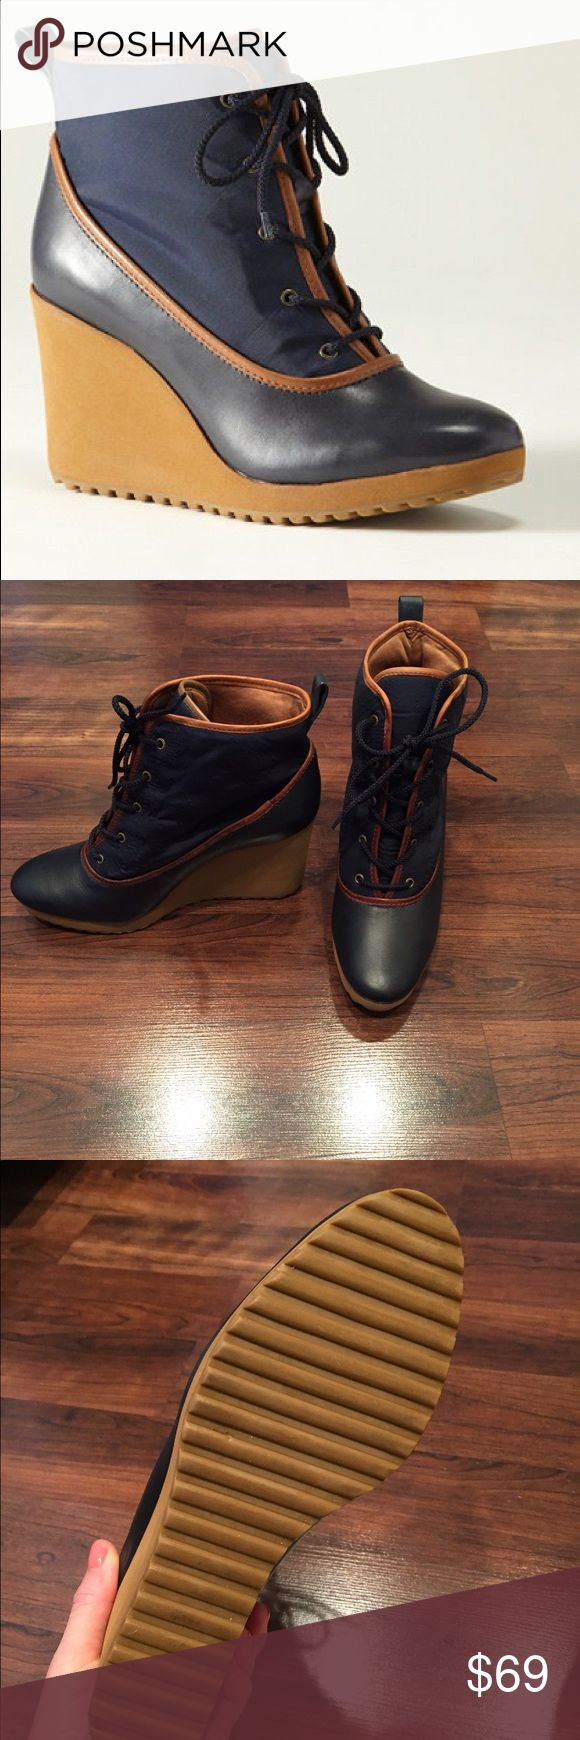 LL Bean winter weather wedge boots Really cute LL Bean wedge boots. Navy blue with nylon upper and leather lower. Only worn twice, great condition. Perfect lightweight boot for winter and spring! No trades. Thanks for looking! LL Bean Shoes Winter & Rain Boots